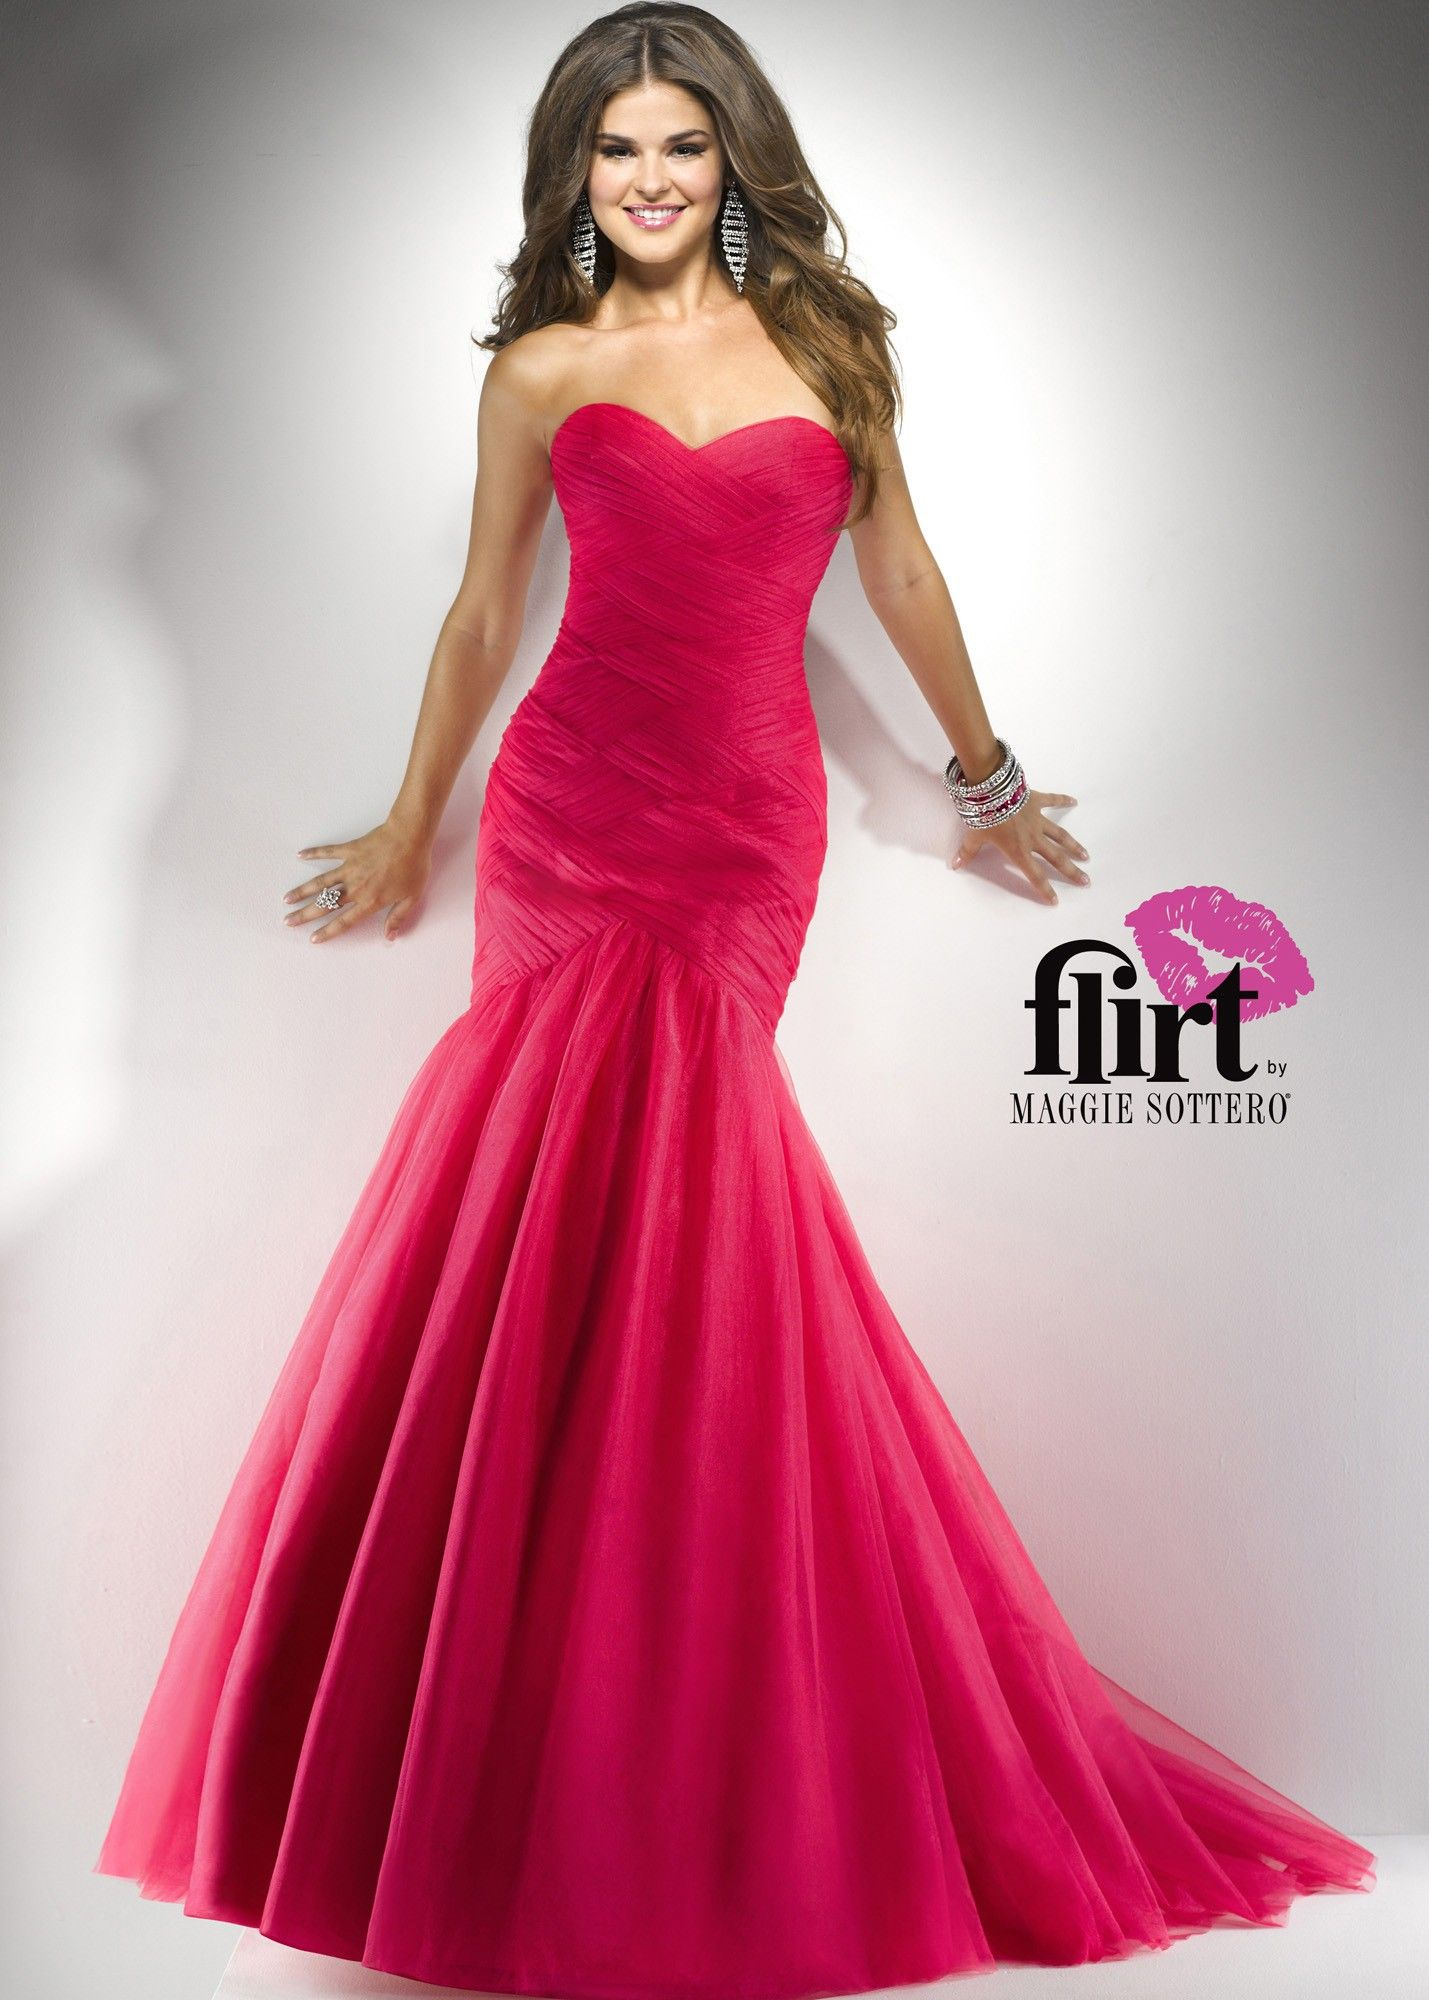 10 Best images about Prom Dresses on Pinterest  Prom dresses ...